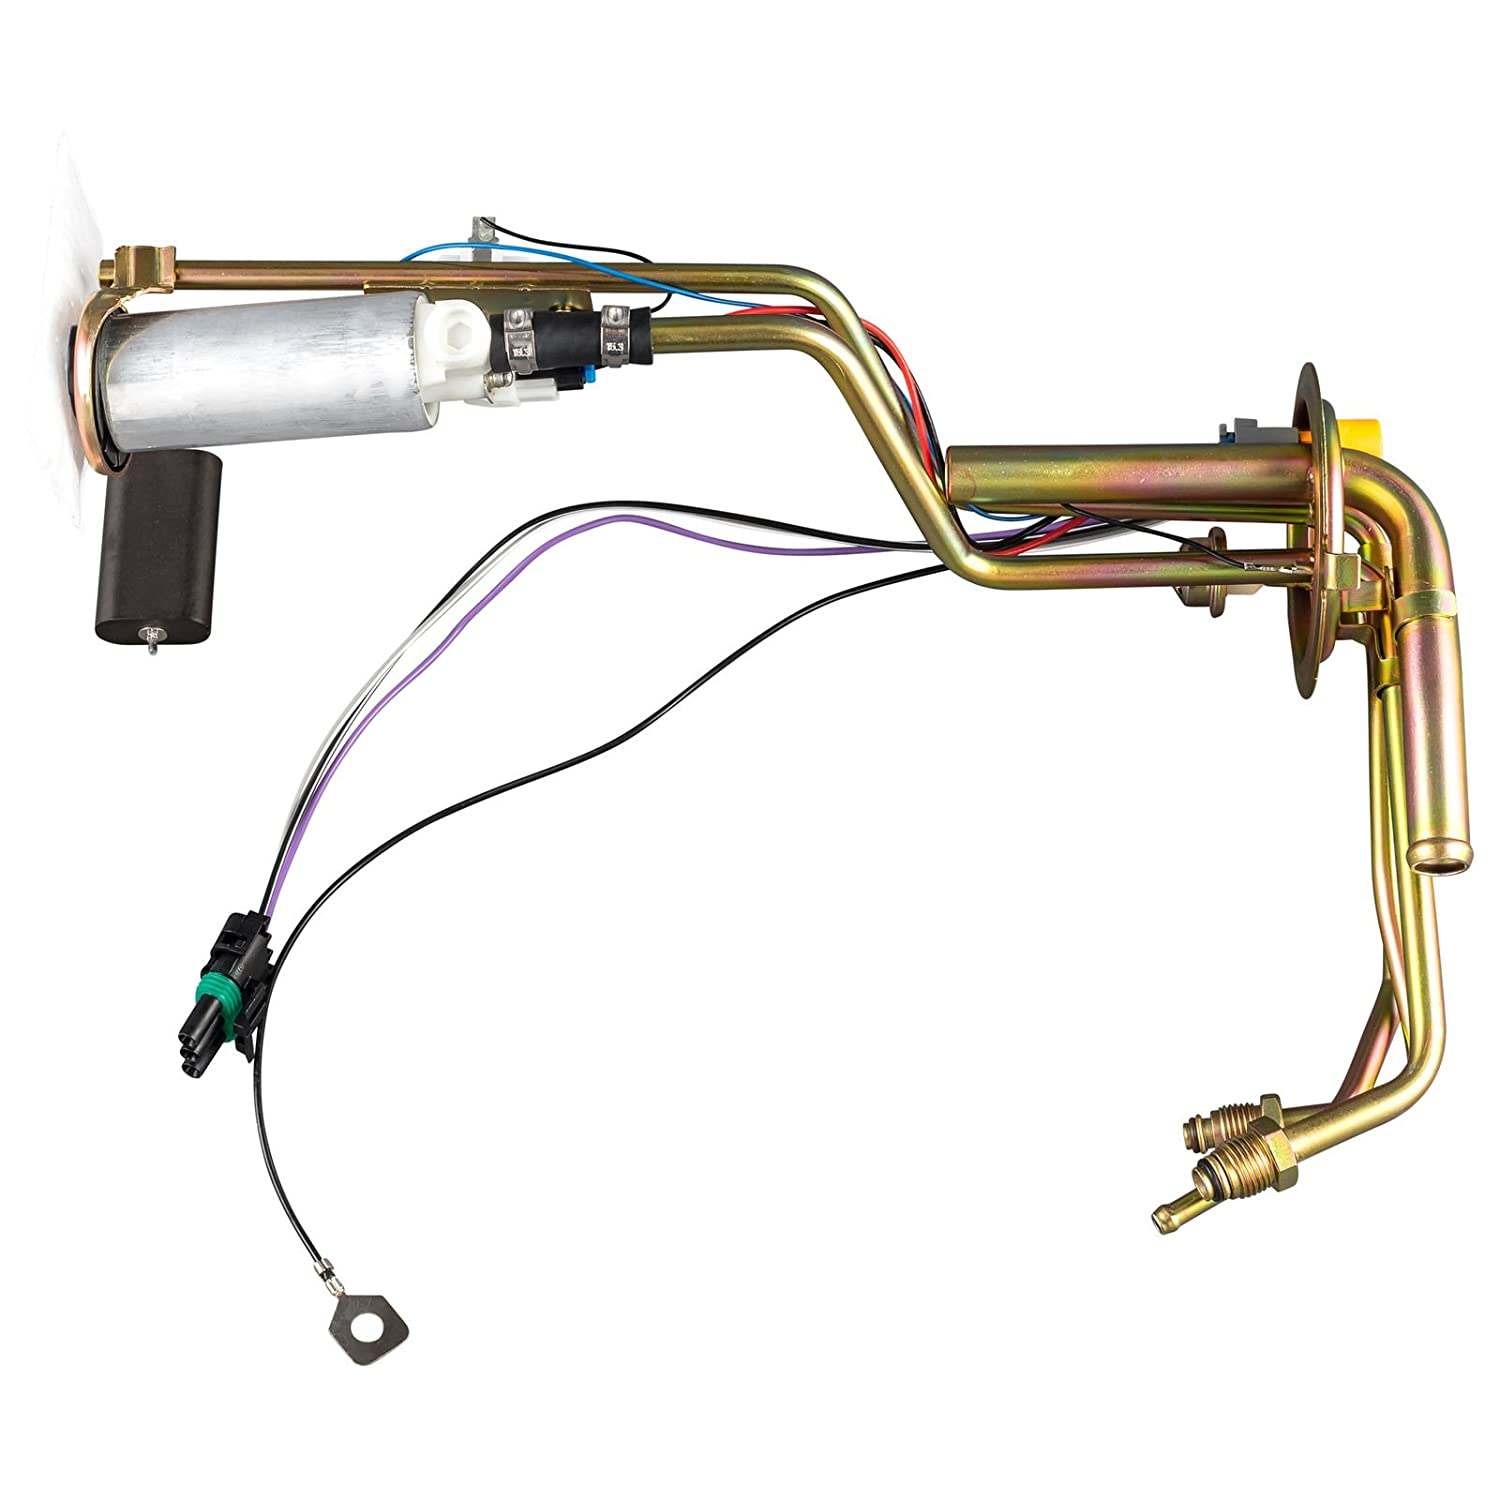 Fuel Pump Sending Unit For 88 95 C K 1500 2500 3500 1985 S10 Filter Location Pickup Truck Fits E3621s Automotive